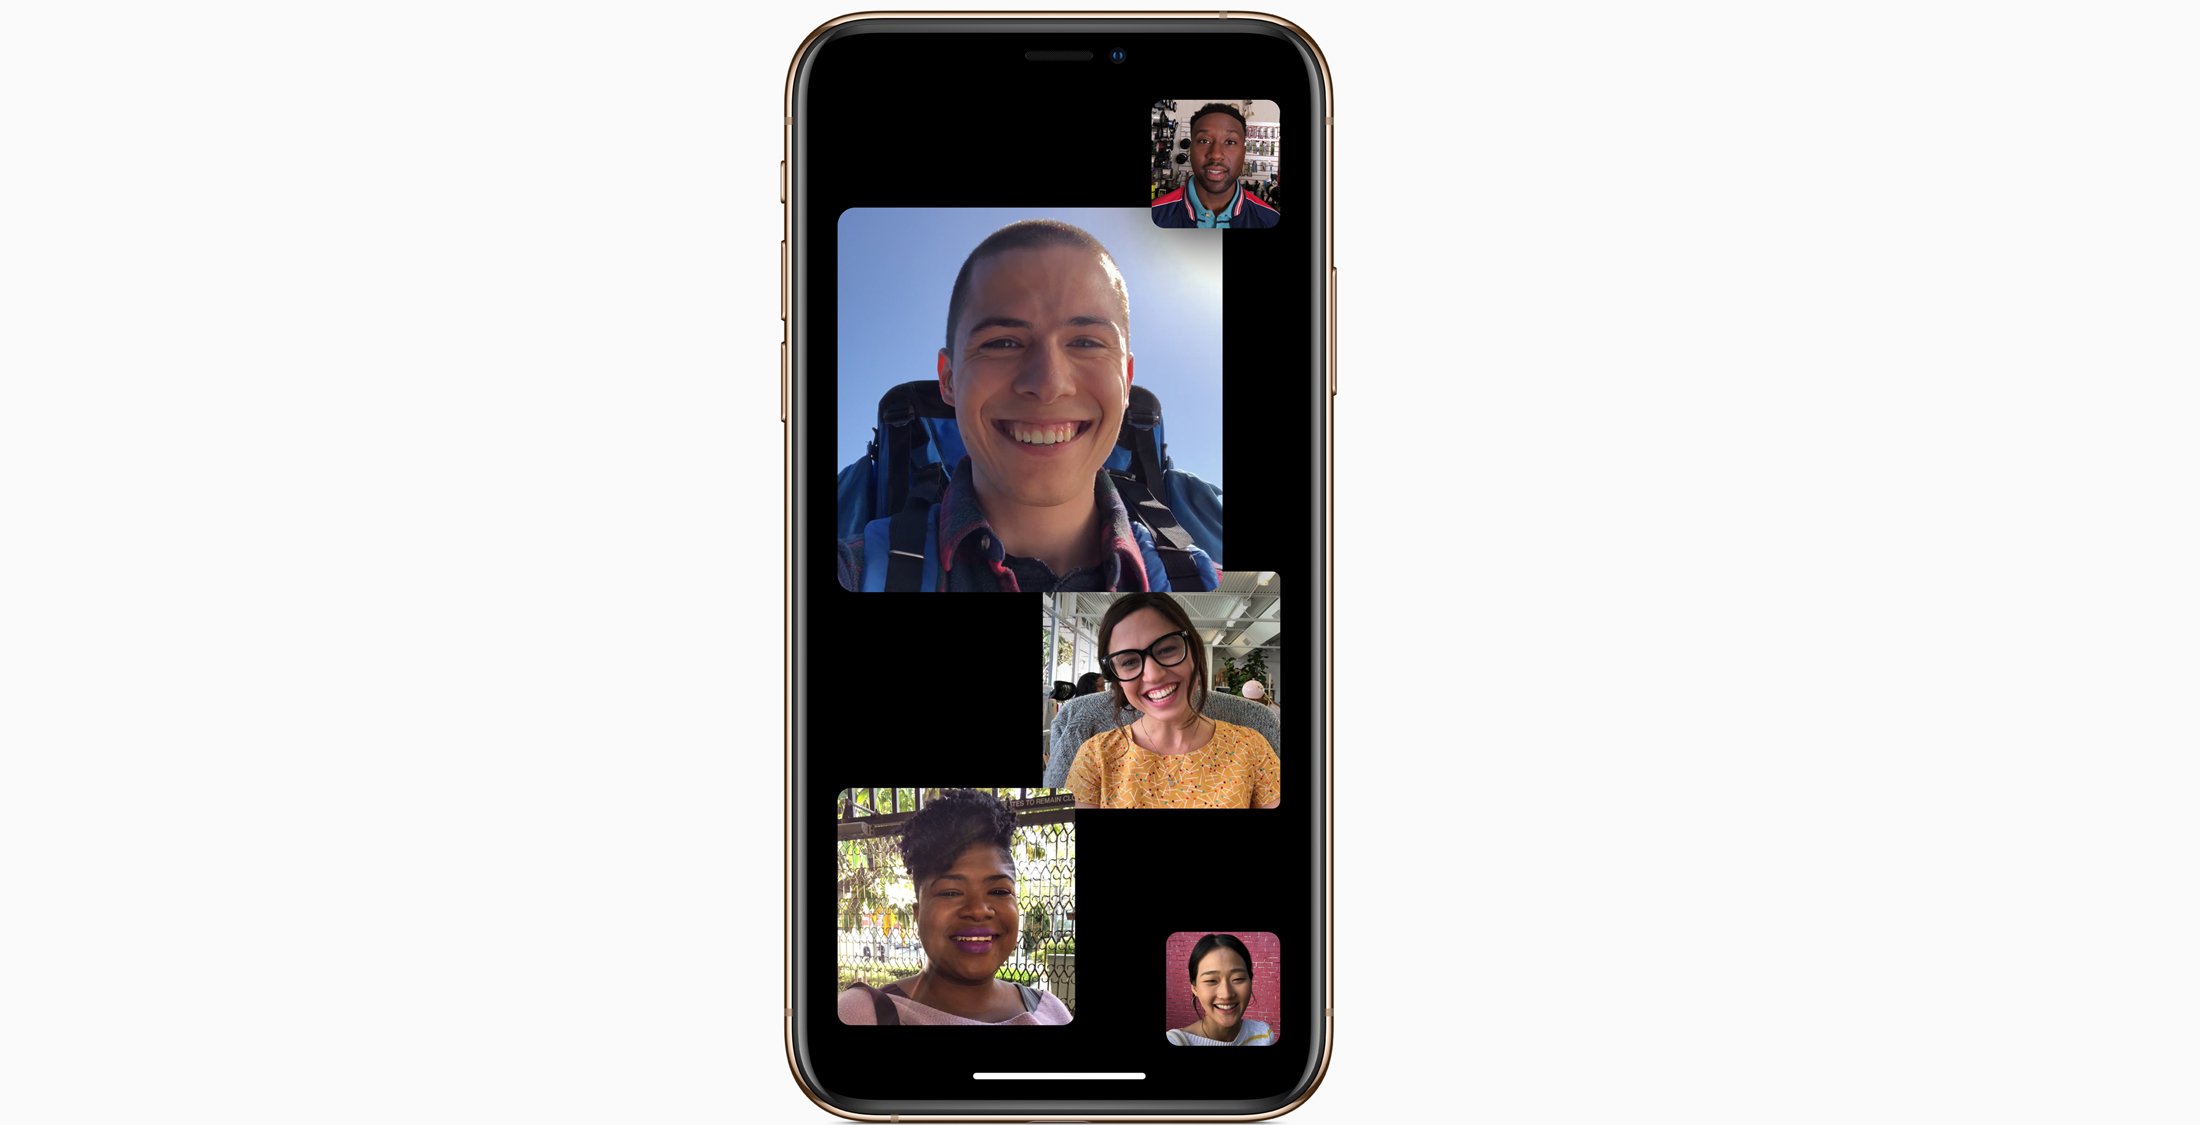 Apple's IOS 12.1 Update Introduces Group FaceTime